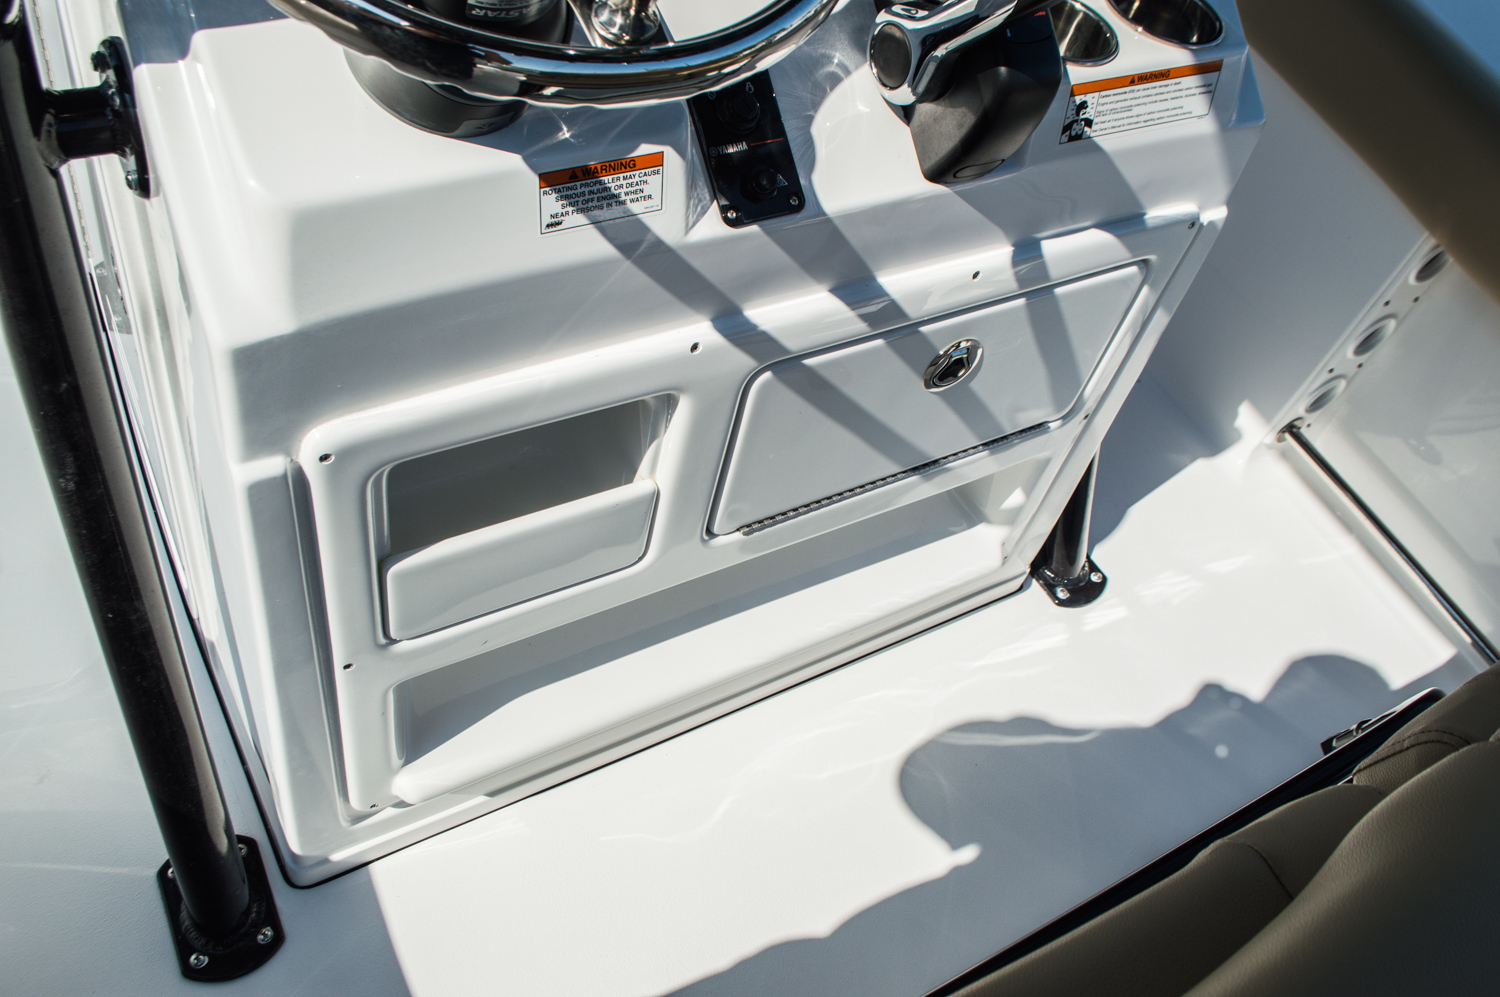 Thumbnail 37 for New 2016 Sportsman Open 212 Center Console boat for sale in West Palm Beach, FL